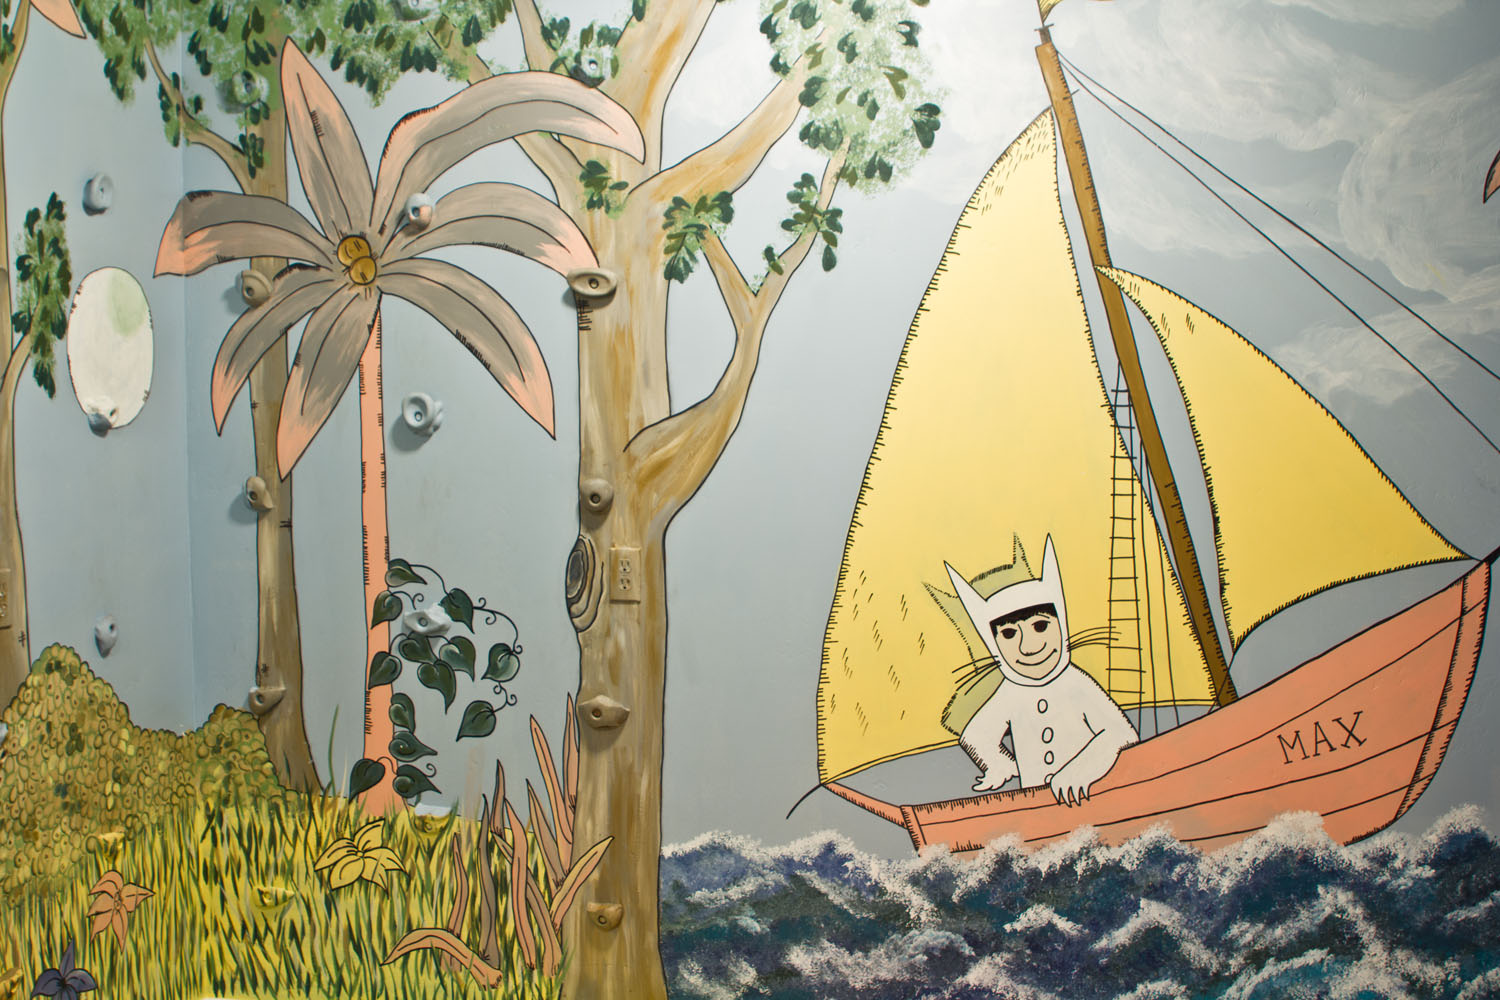 where the wild things are wall murals cassidy tuttle photography stay tuned birthday bbq peter pan wall murals